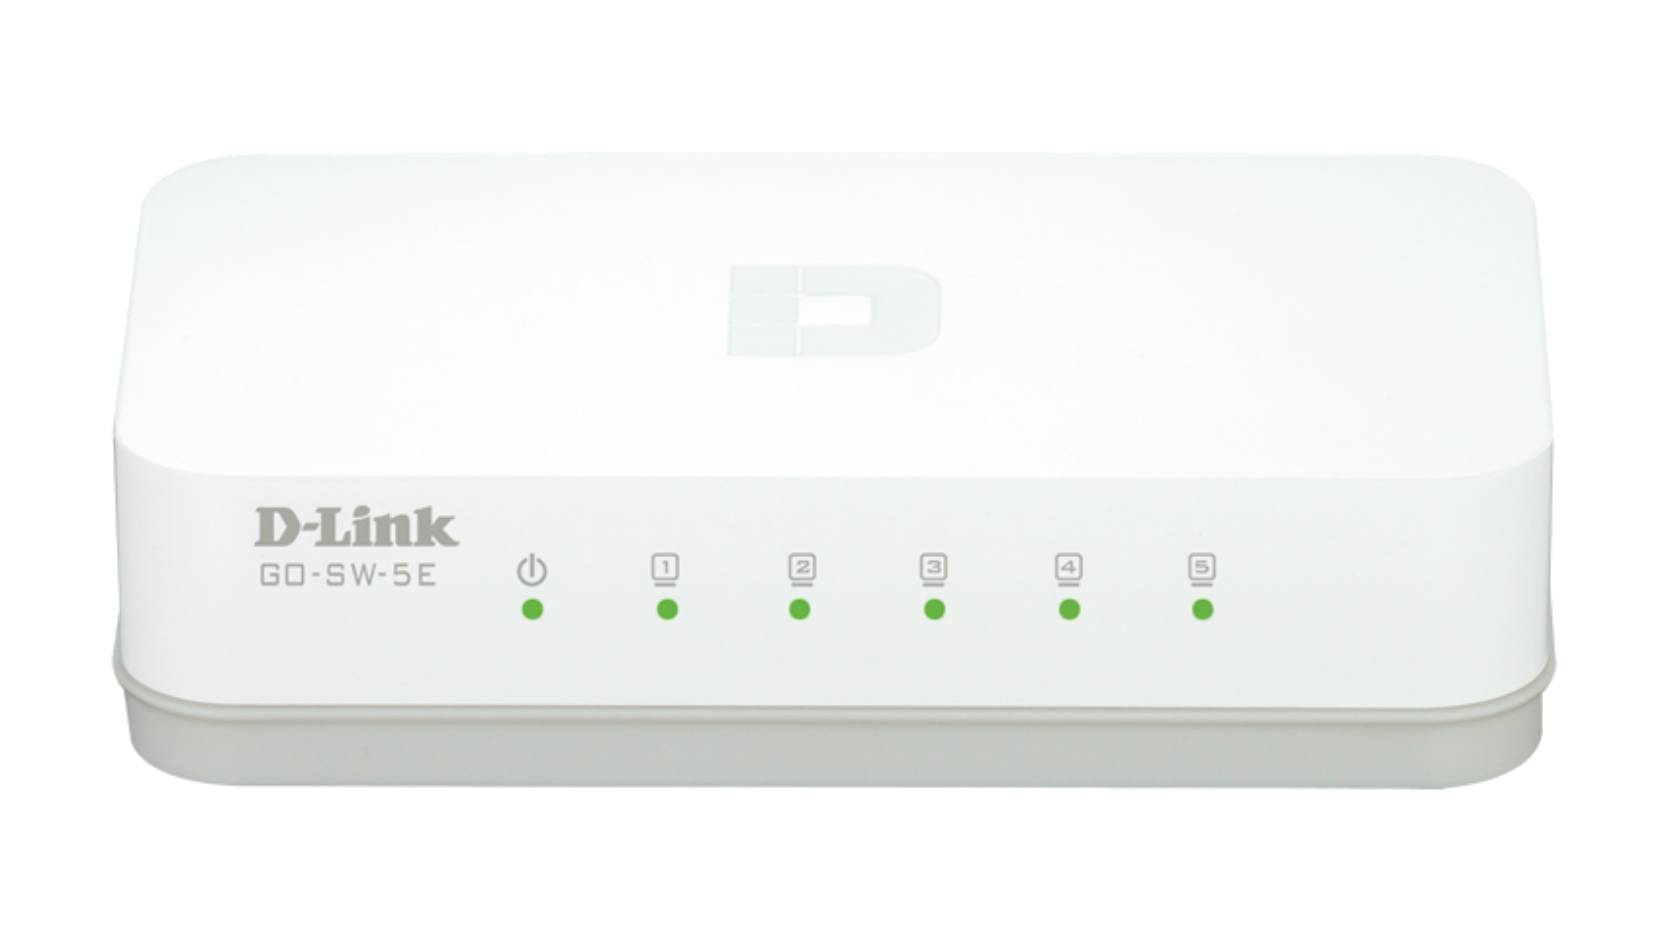 Switch D-Link me 5 porta 10/100Mbps